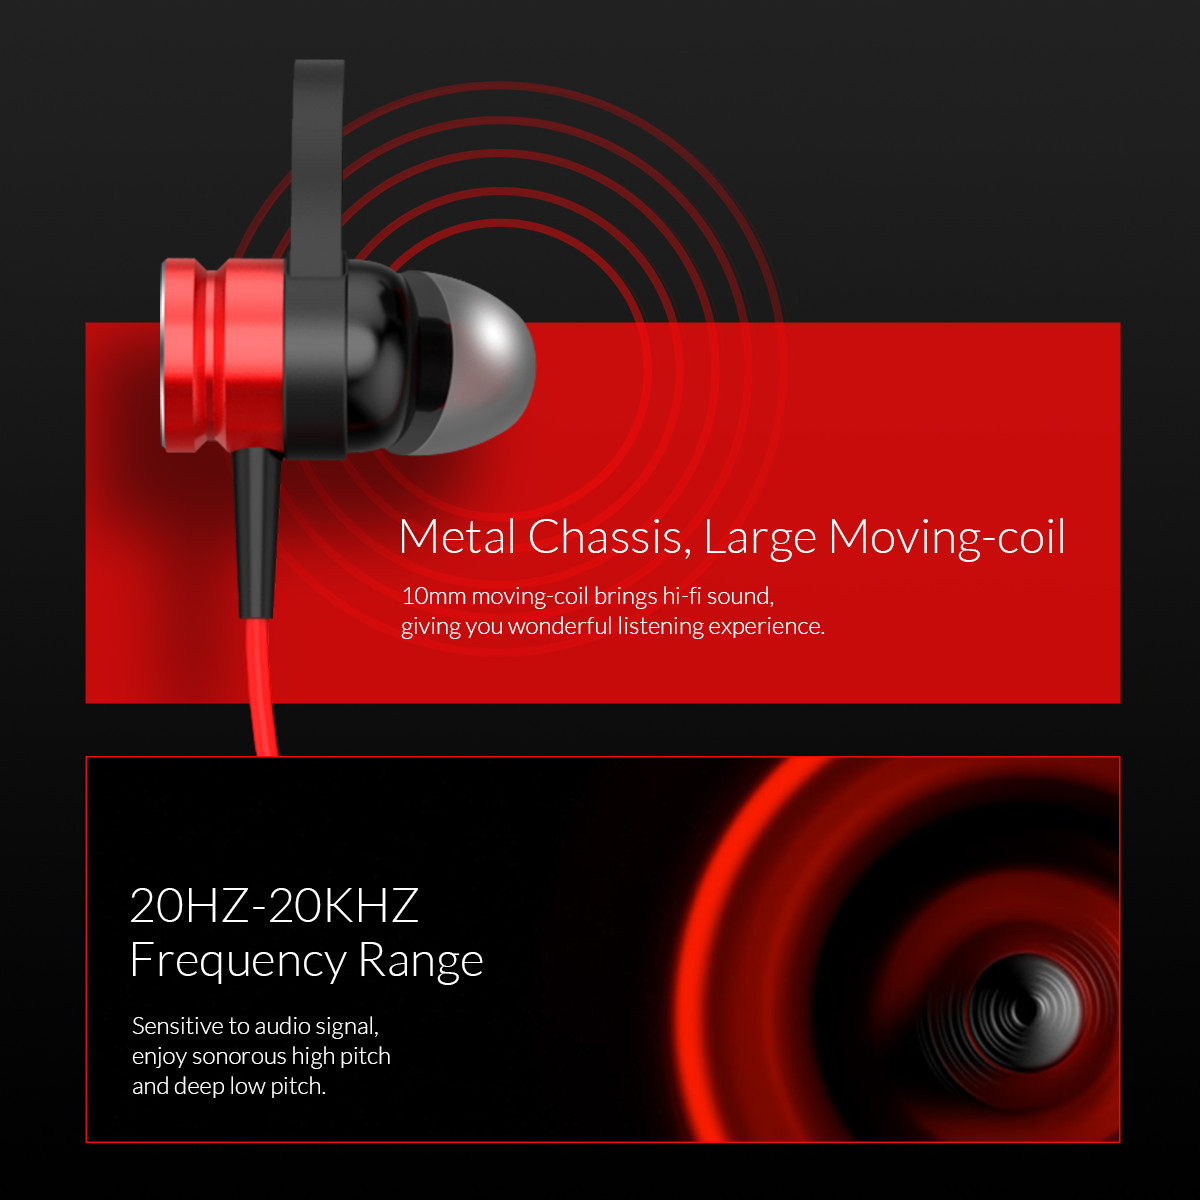 metal chassis large moving-coil